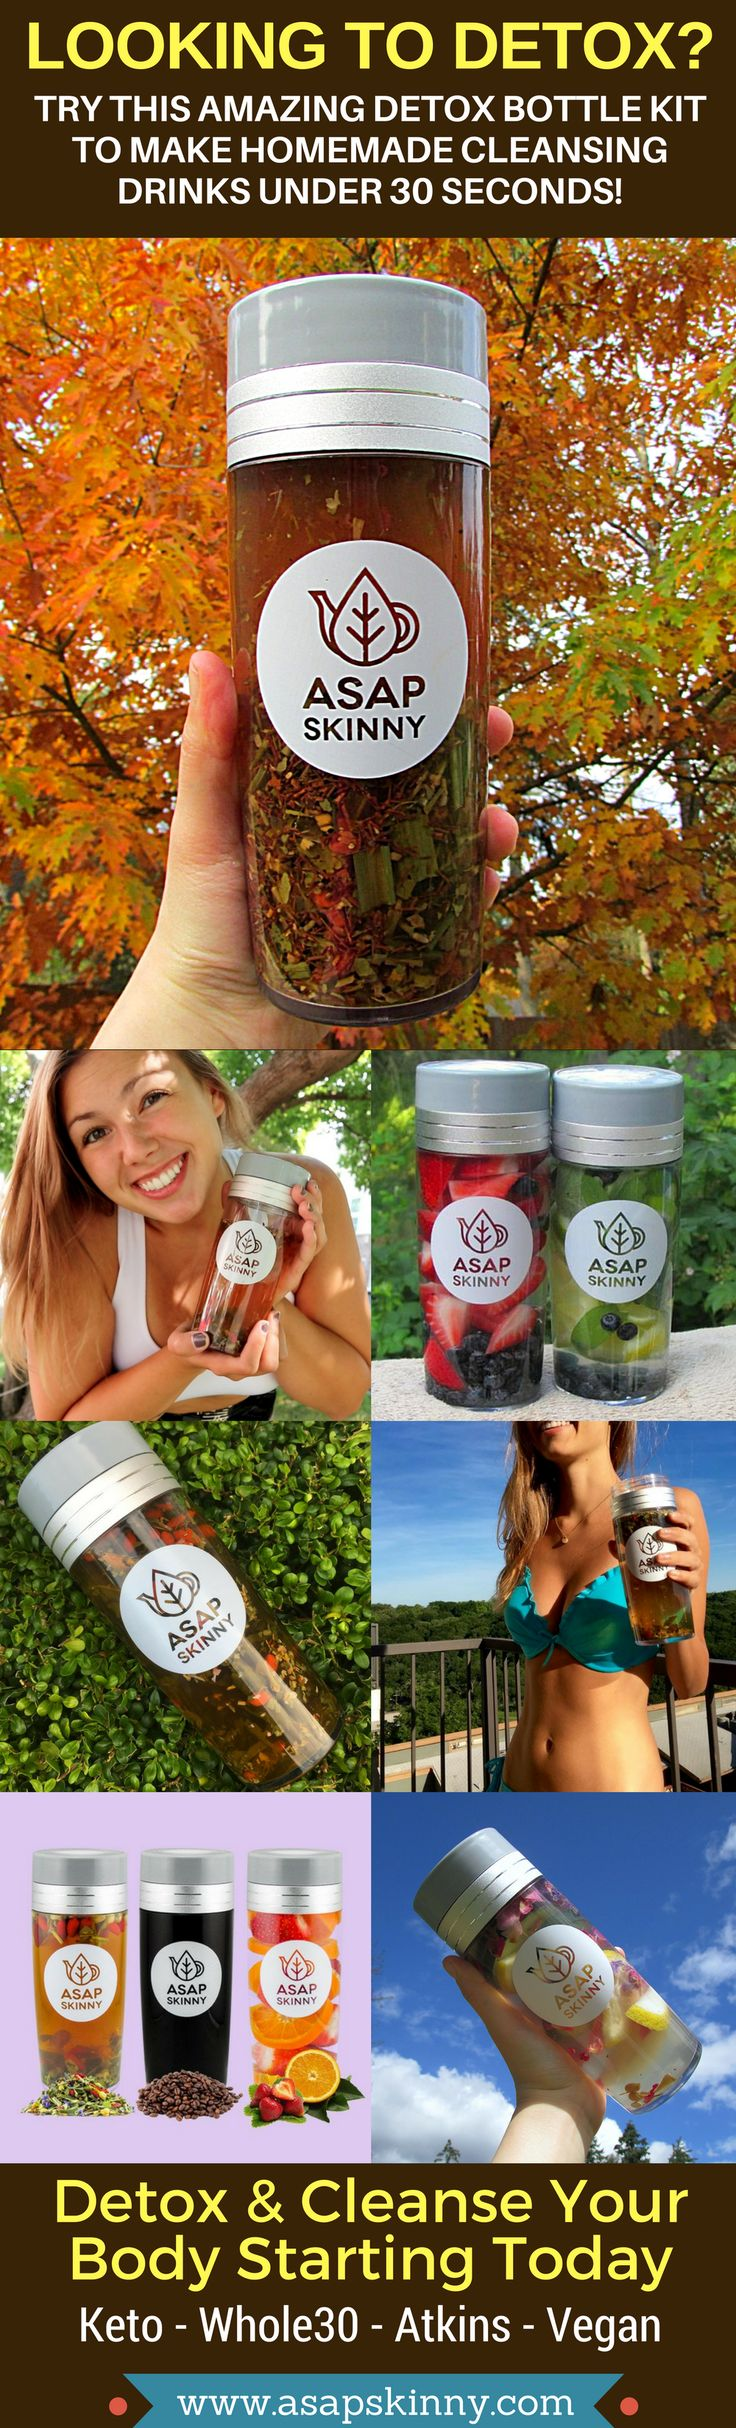 Detox & Cleanse With ASAPSKINNY! Kickstart Your New Healthy Lifestyle Fast & Easy. Our Versatile Detox Infuser Bottle Comes With a FREE Removable Mesh Strainer/Steeper. Use it to Make Loose Leaf Tea, Fruit Infused Water or Coffee. Perfect for Atkins - Keto - Whole30 - Vegan Lovers. Made For On-The-Go Busy People Who Are Looking To Get Fit and Healthy. Cleanse Anywhere, Anytime. Selling Out FAST! SHOP NOW ➡➡➡ www.asapskinny.com